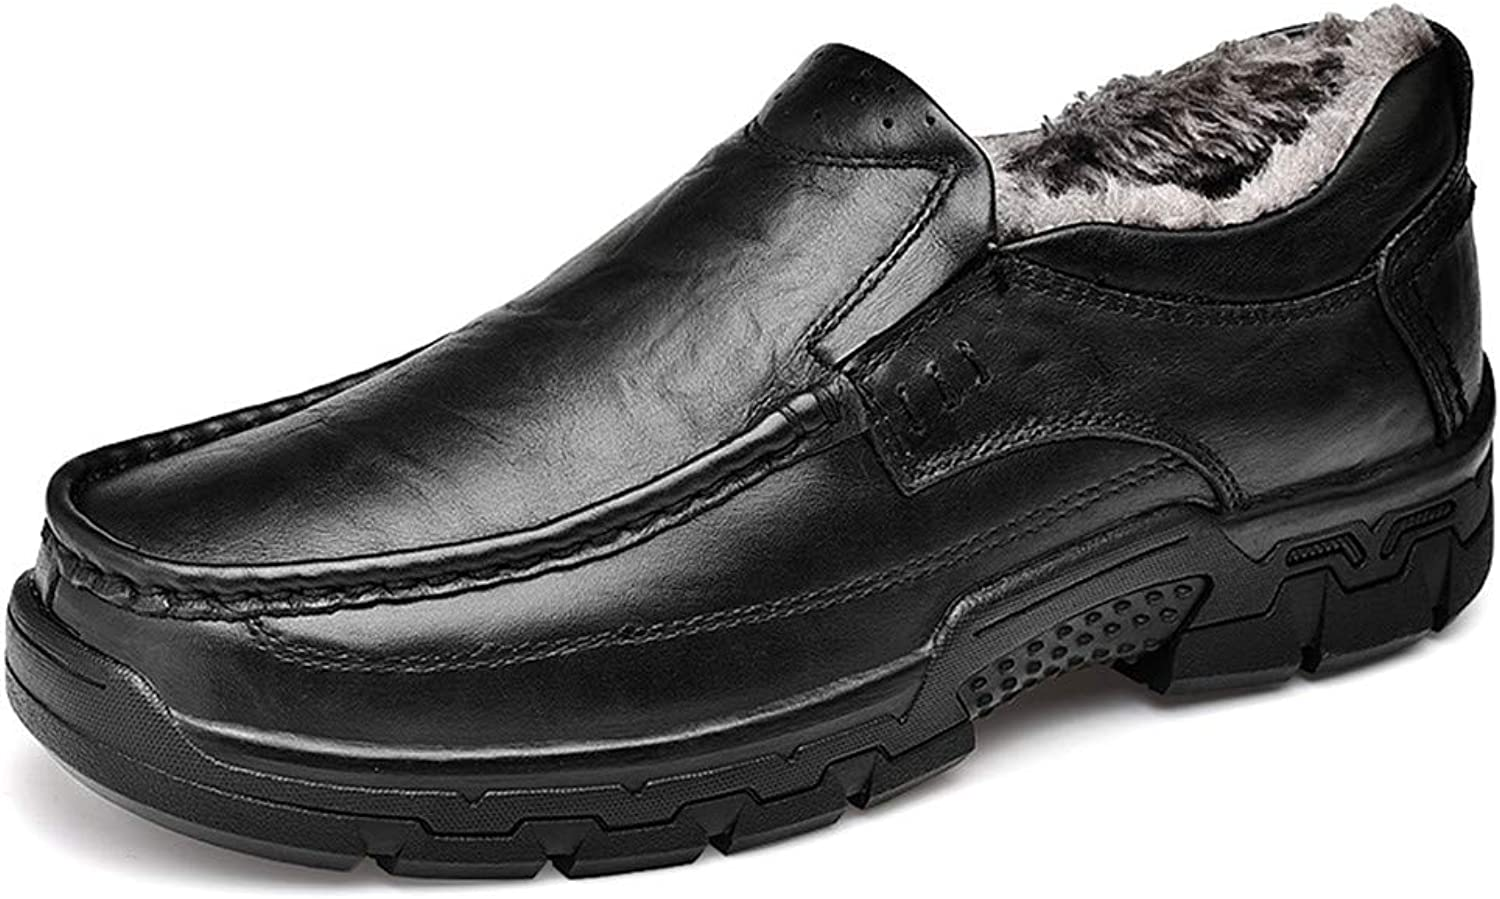 SRY-shoes Men's Simple Outdoor Oxfords Fashionable Design Slip on shoes